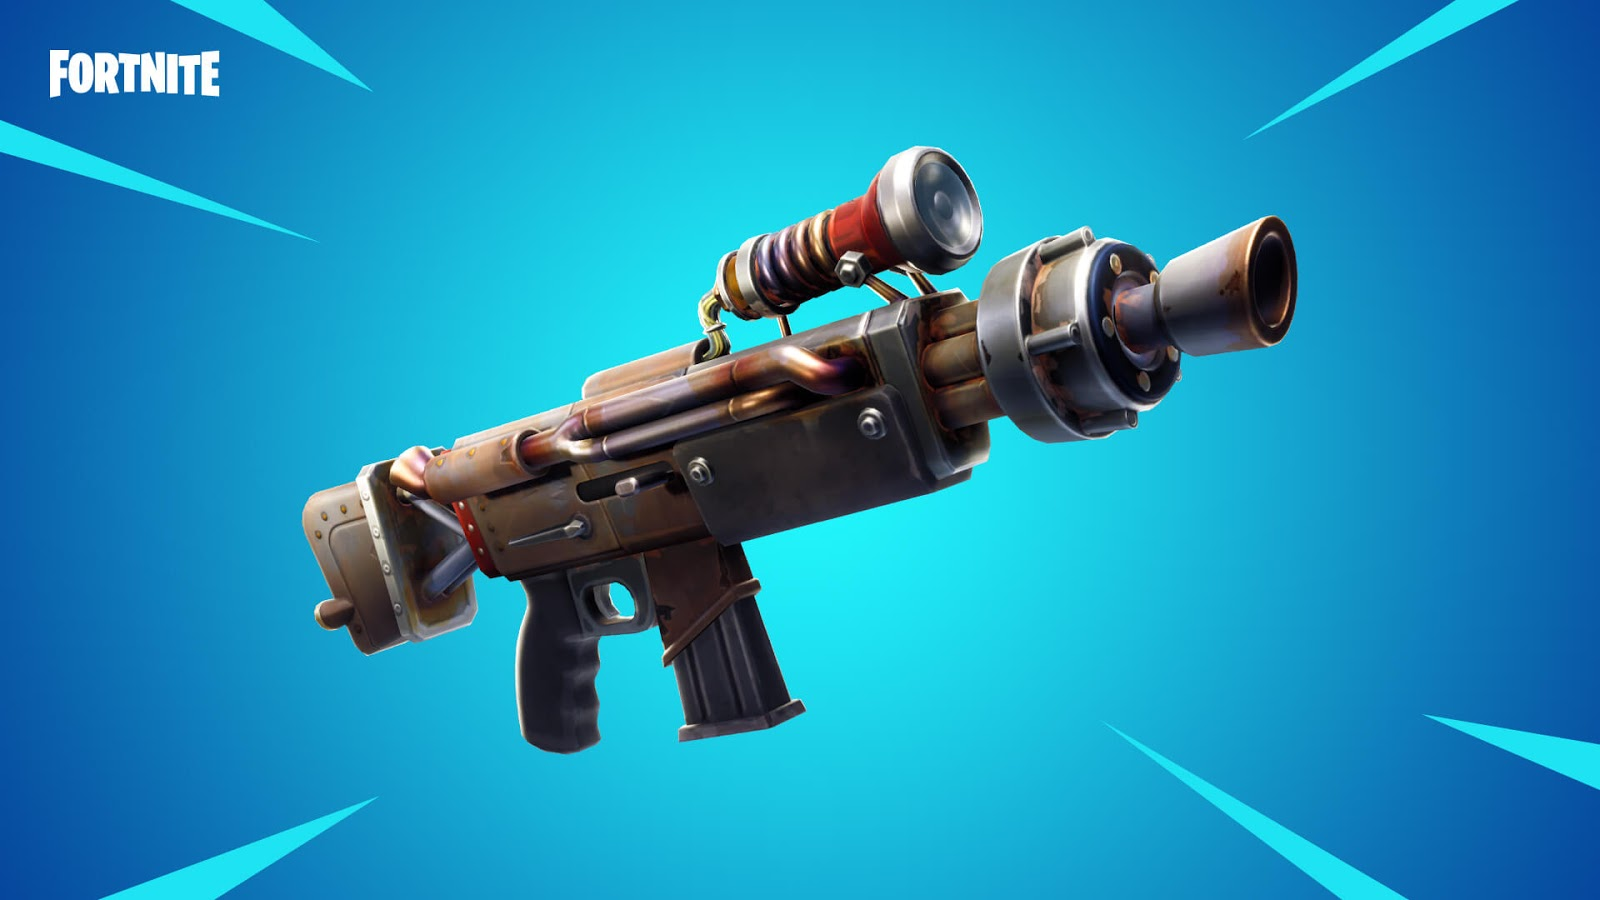 Fortnite V6.10 Update: Add New Quadcrasher Vehicle, Fortnite Competition, And More